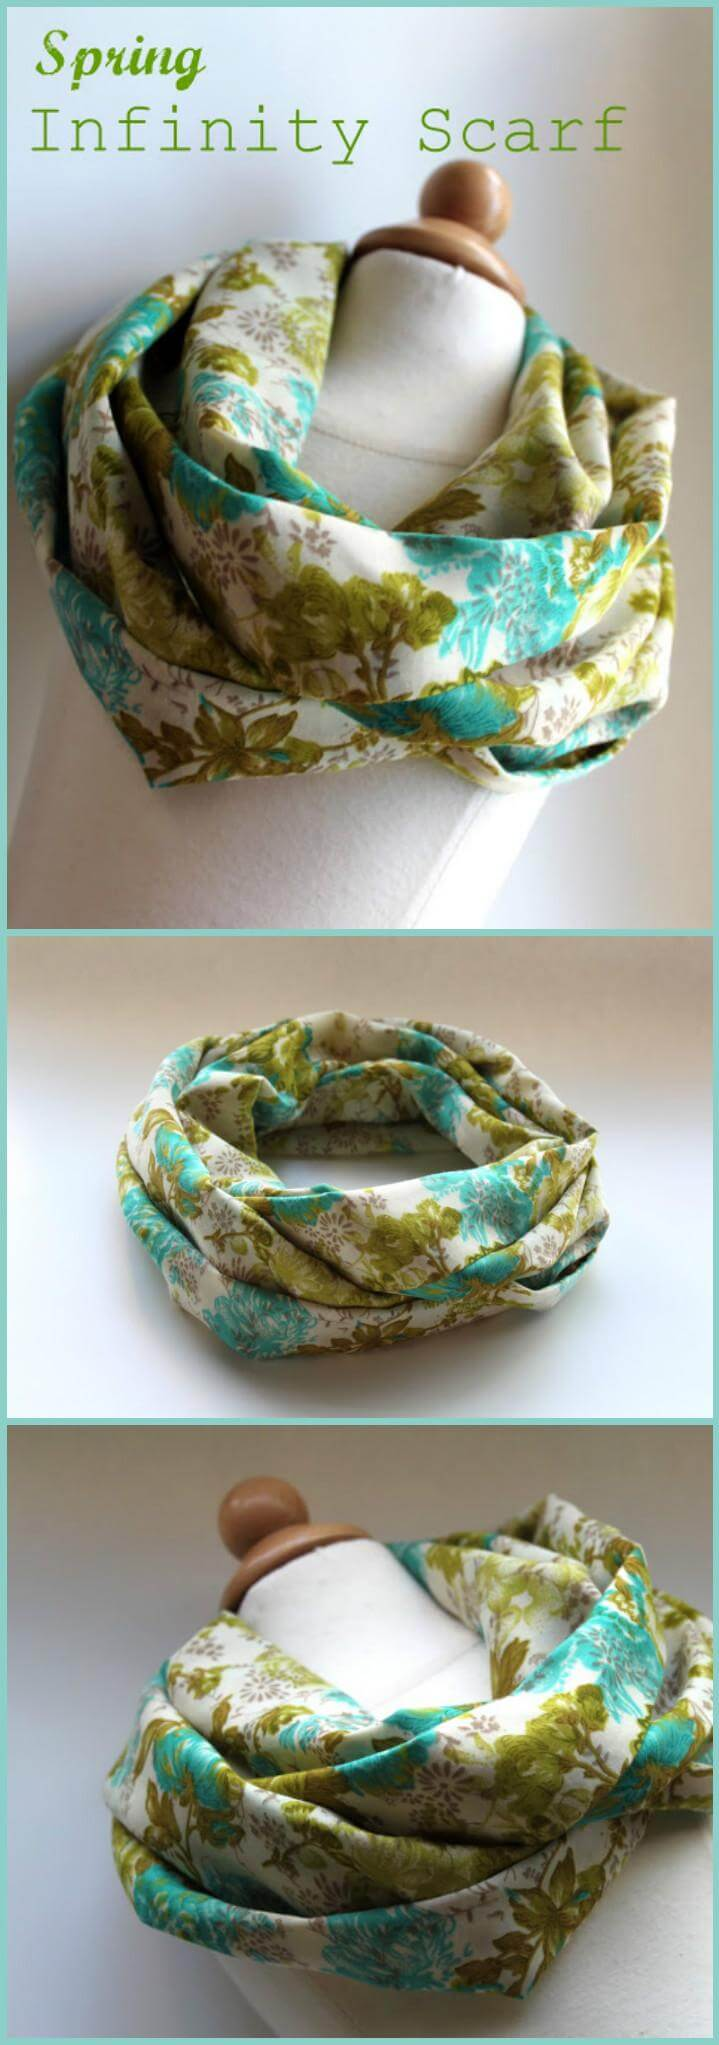 easy spring infinity scarf